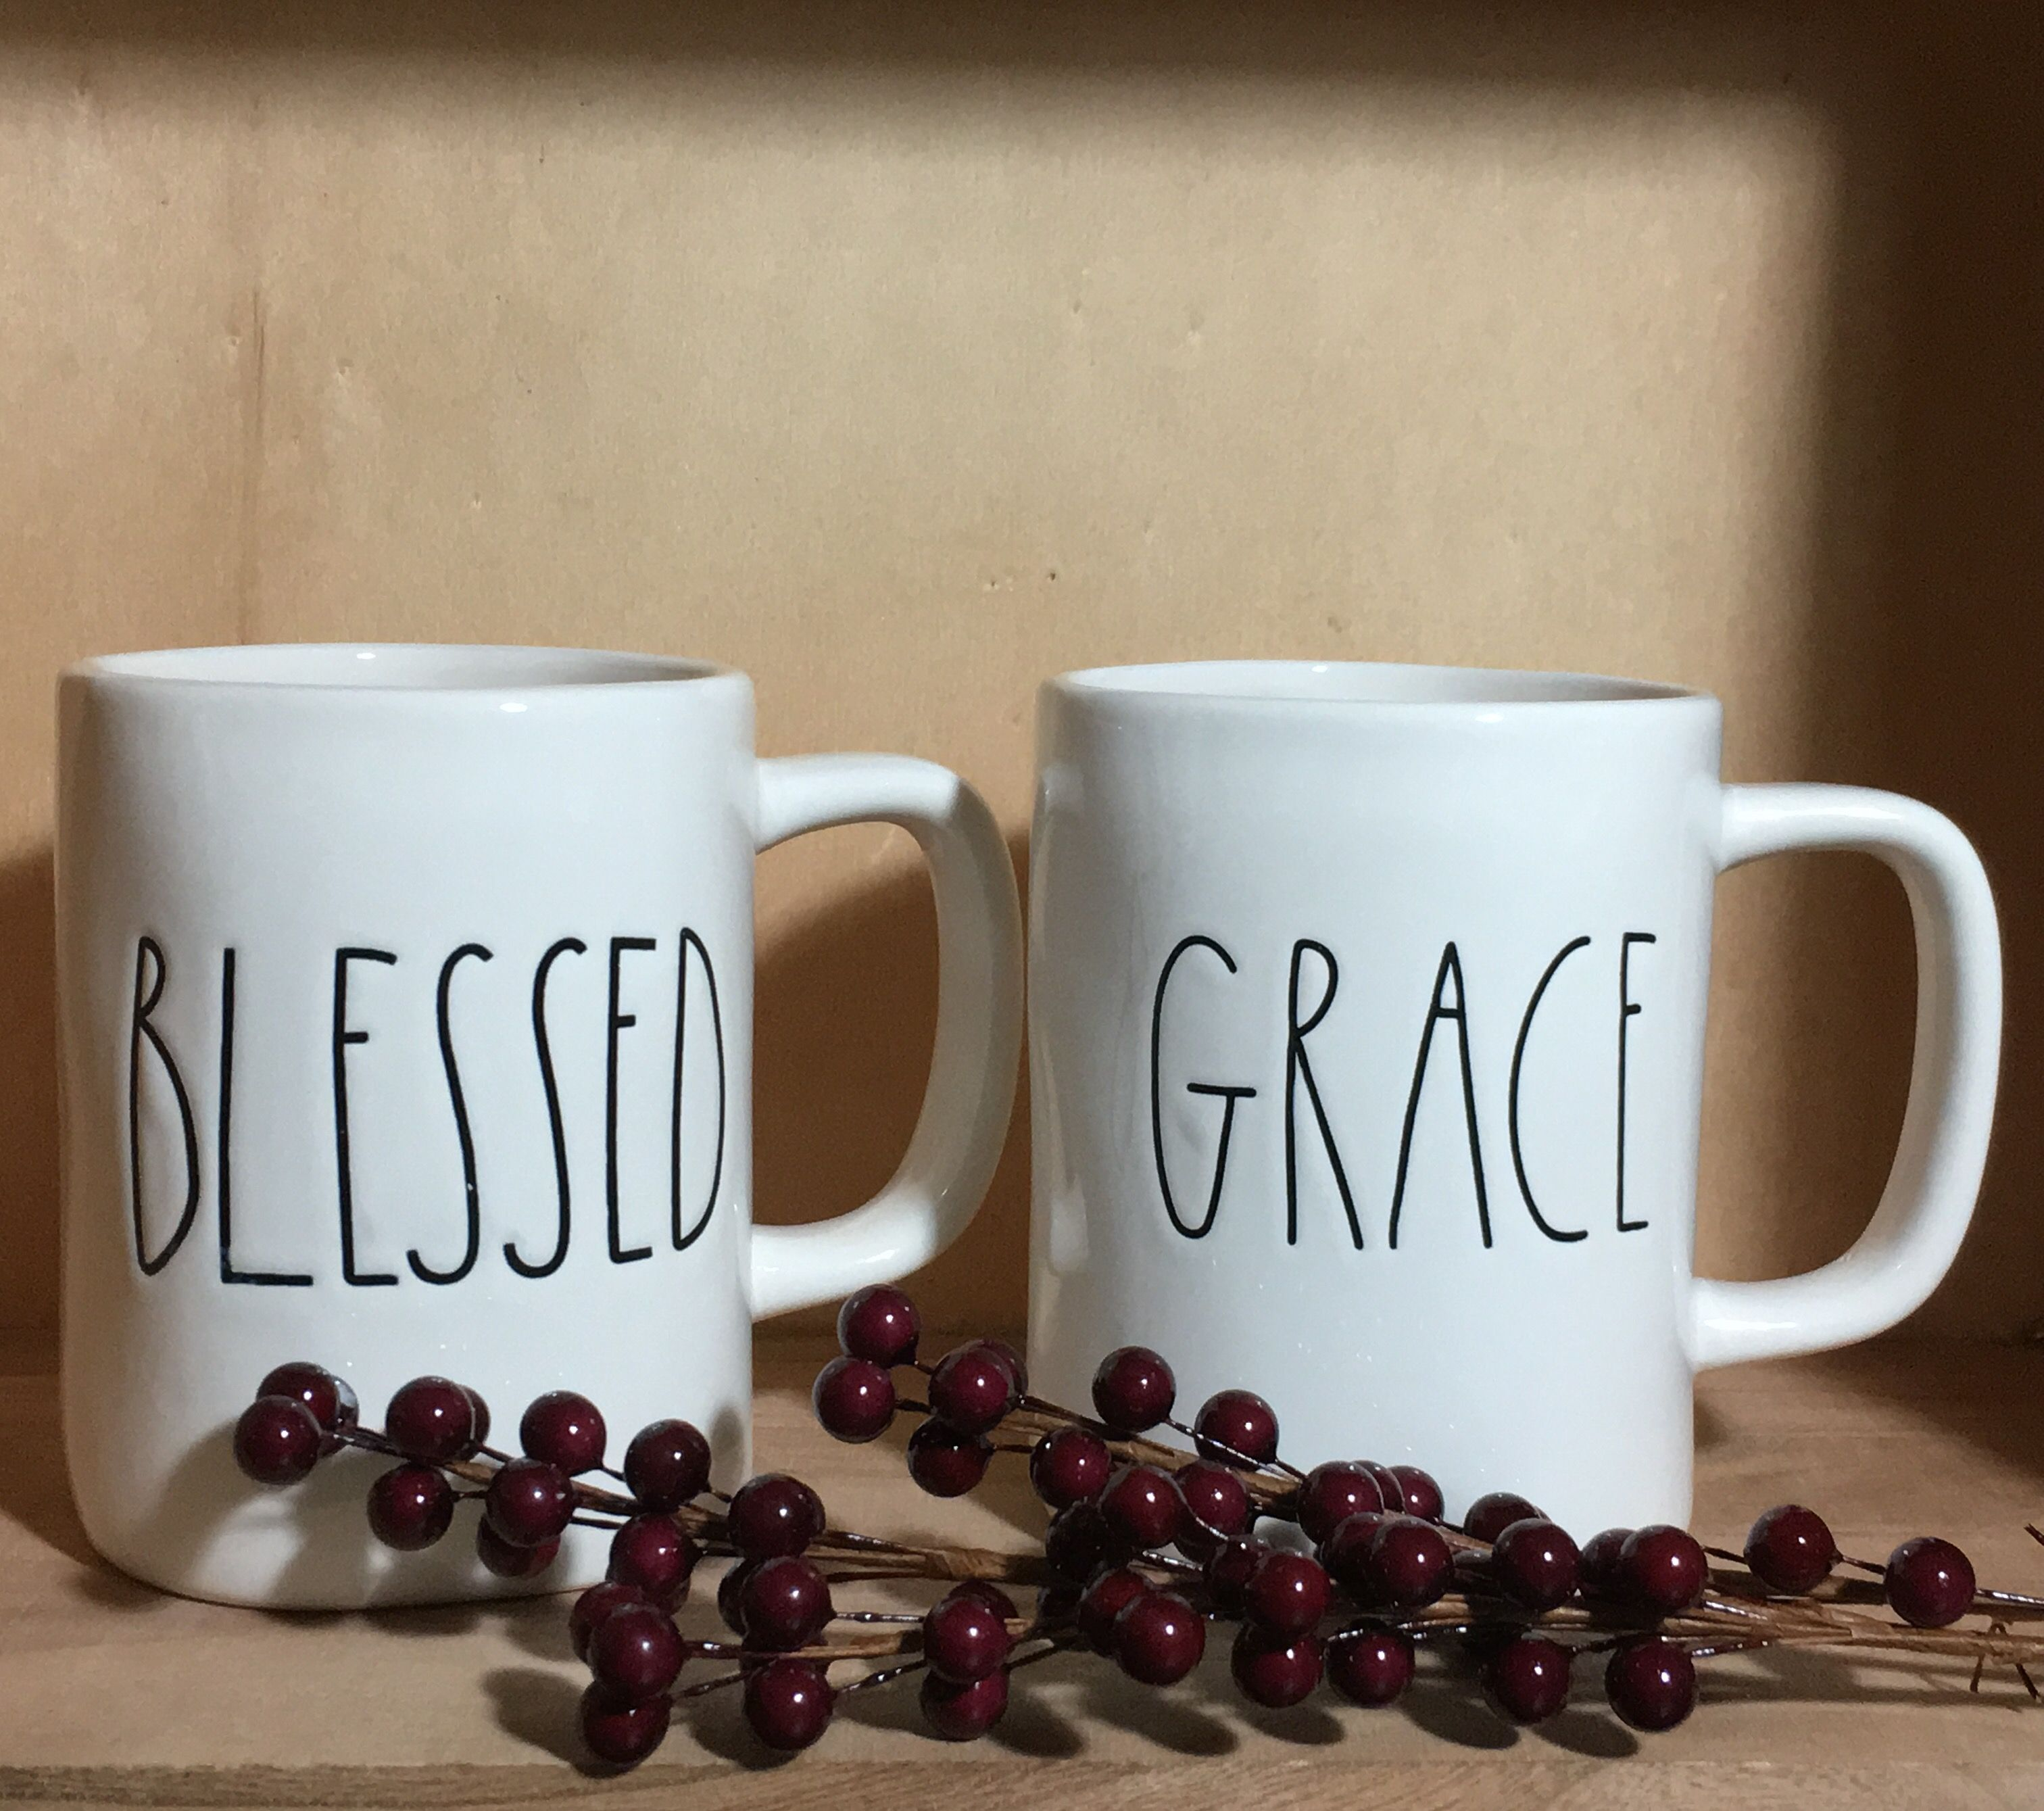 Rae Dunn Blessed Or Grace Mug Rae Dunn For Sale Pinterest